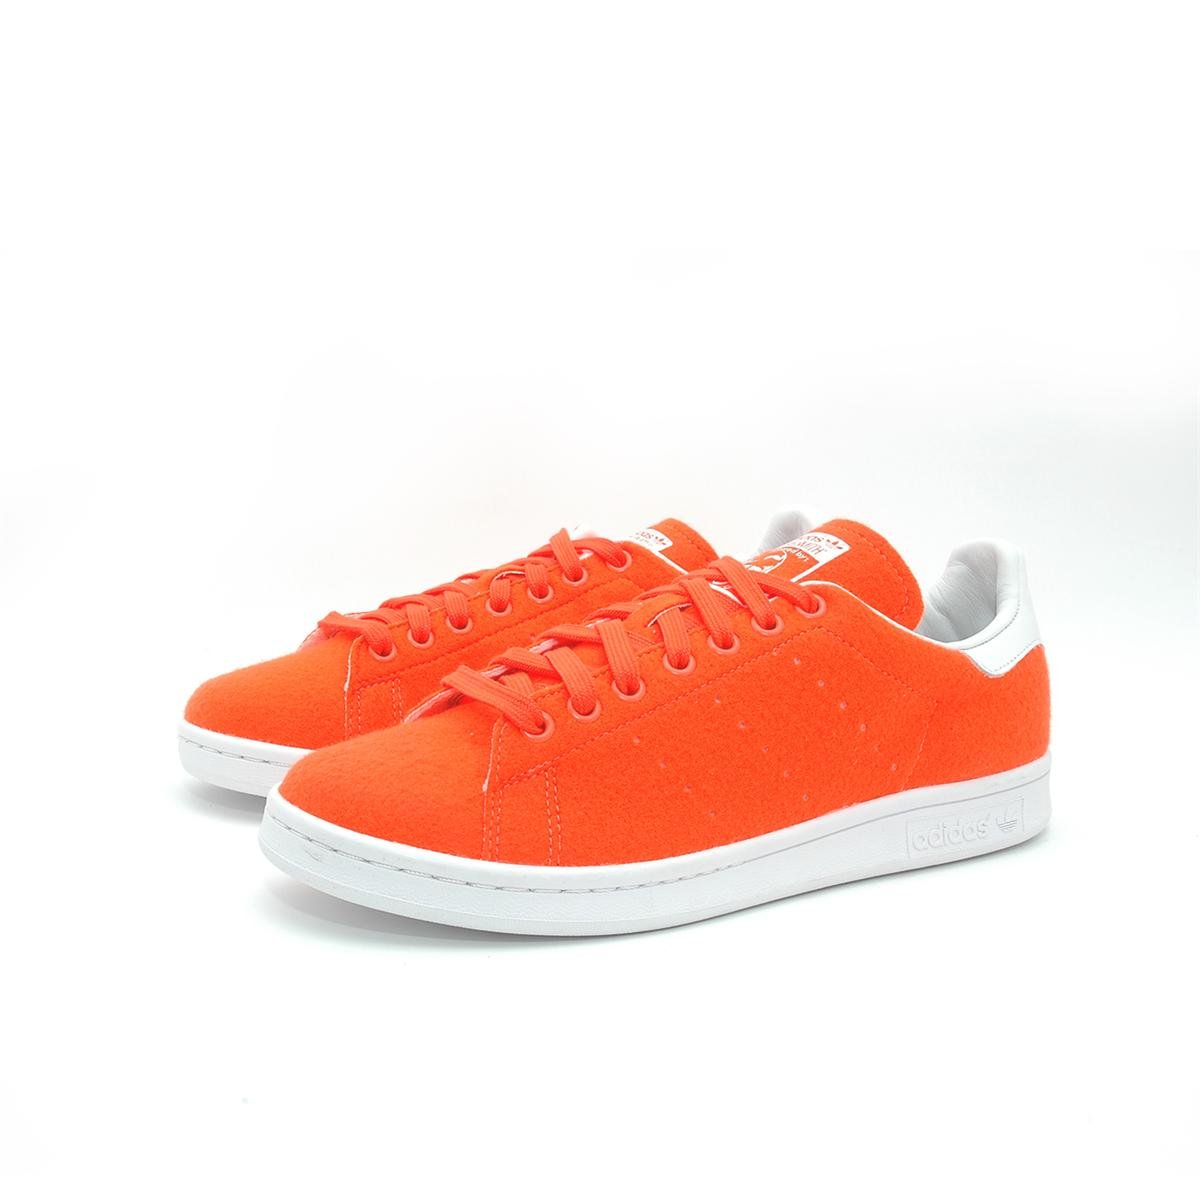 Adidas Schuhe – Stan Smith Pharrell Williams Tns Schwarz